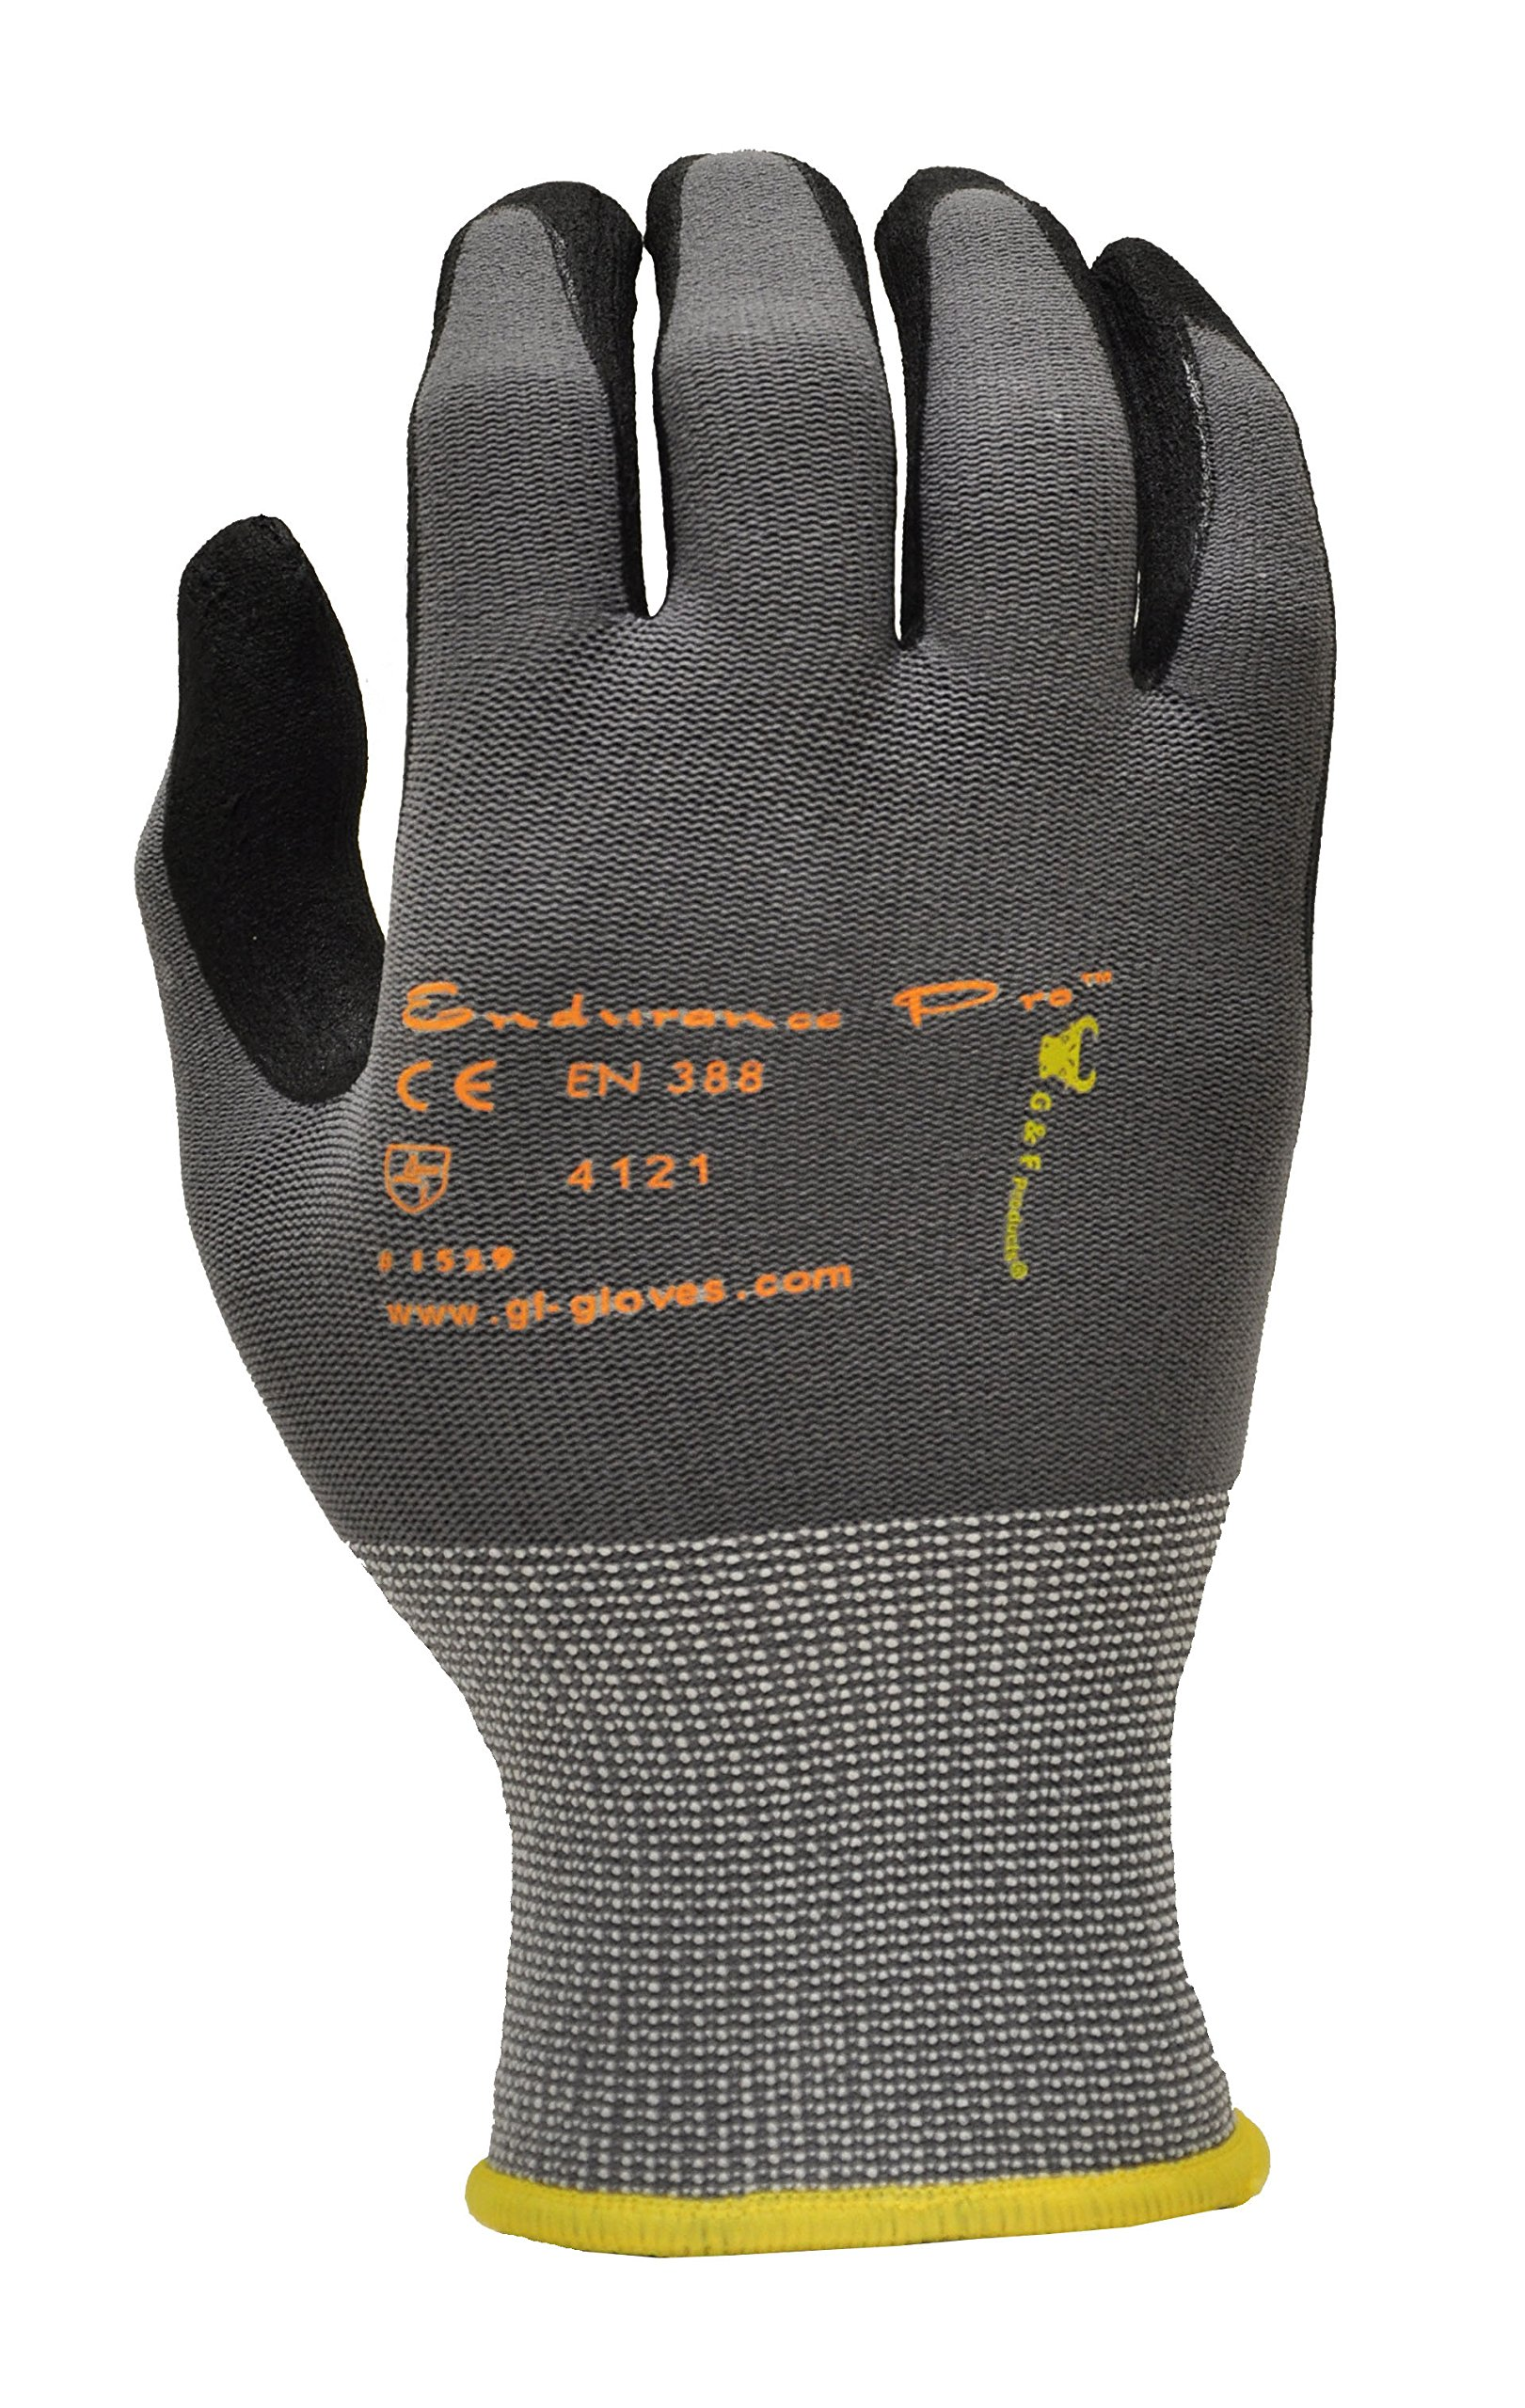 MicroFoam Nitrile Coated Work Gloves for General Purposes, Lightweight Work Gloves, 12 Pair Pack, Large by G & F Products